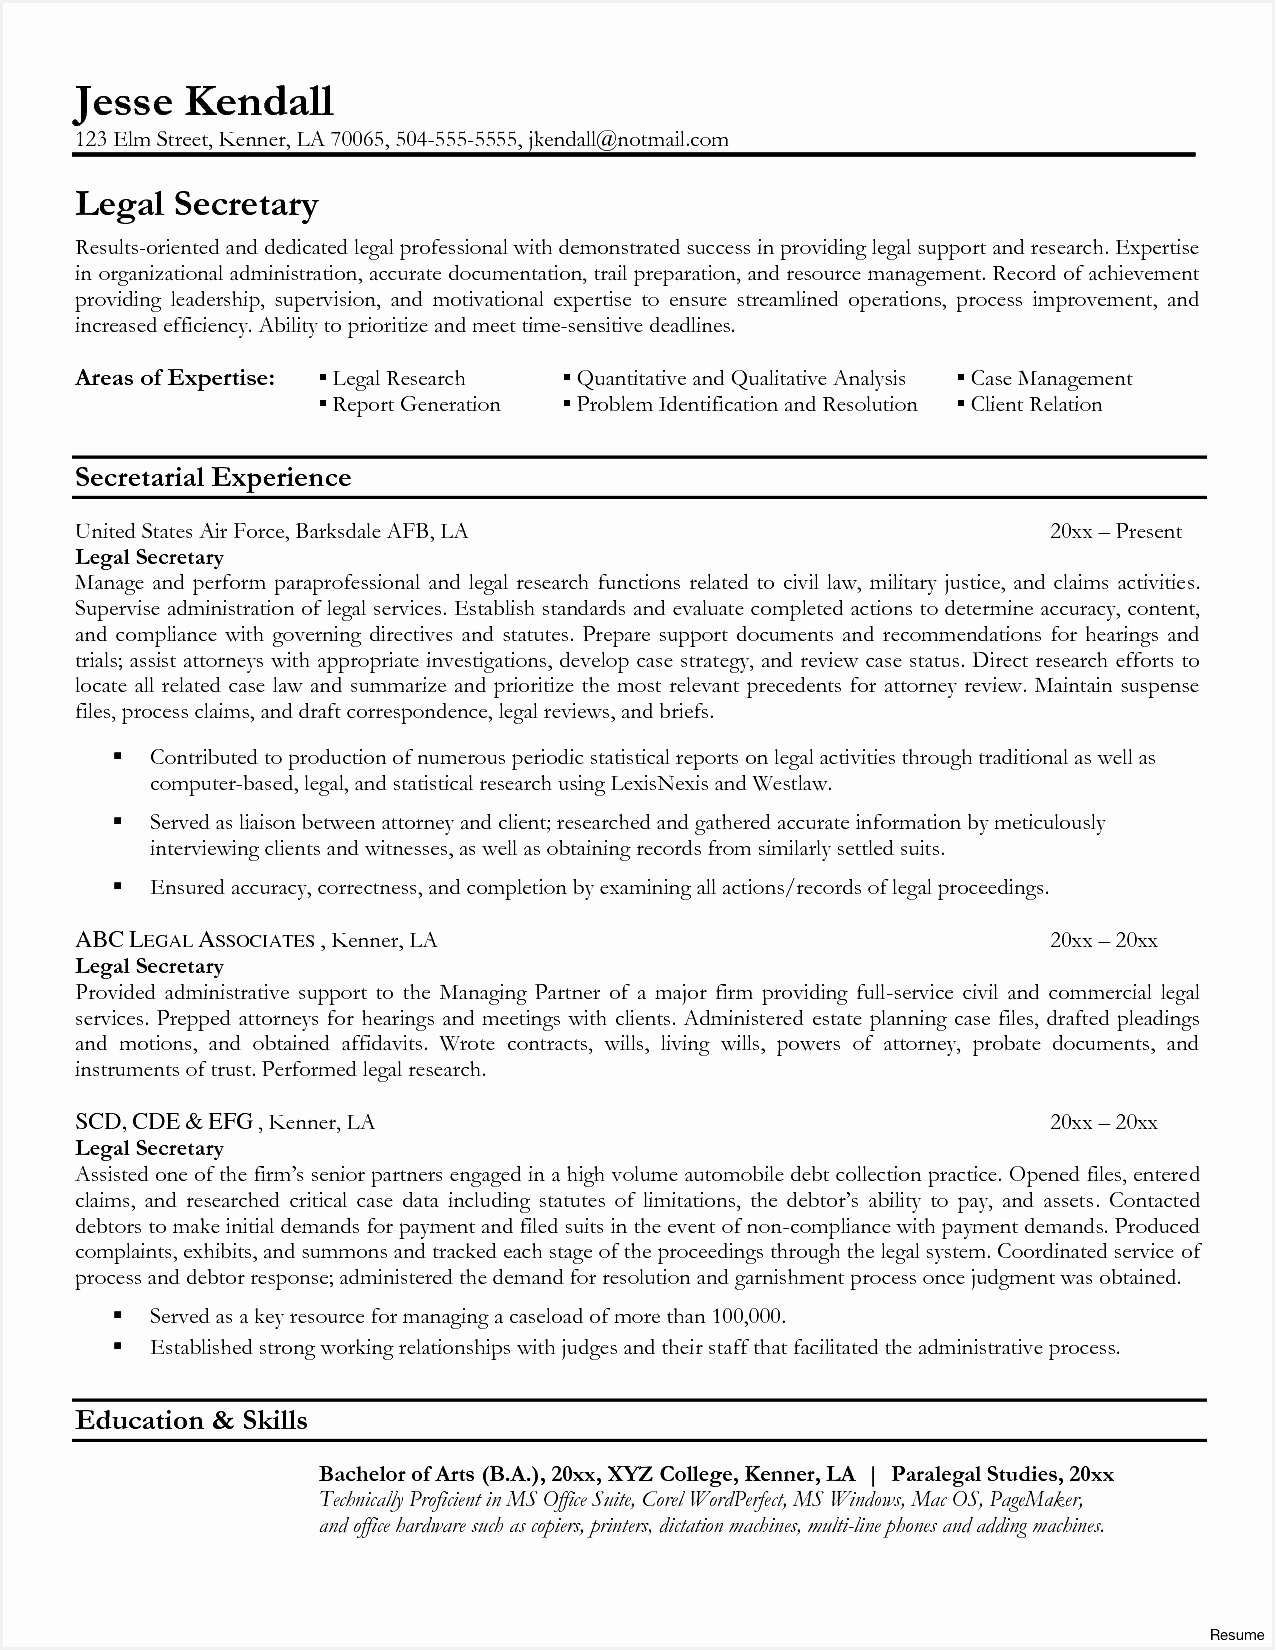 Law Student Resume Template Luxury Legal Cv Template Layout Lawyer Resume Templates Free Law Student16501275